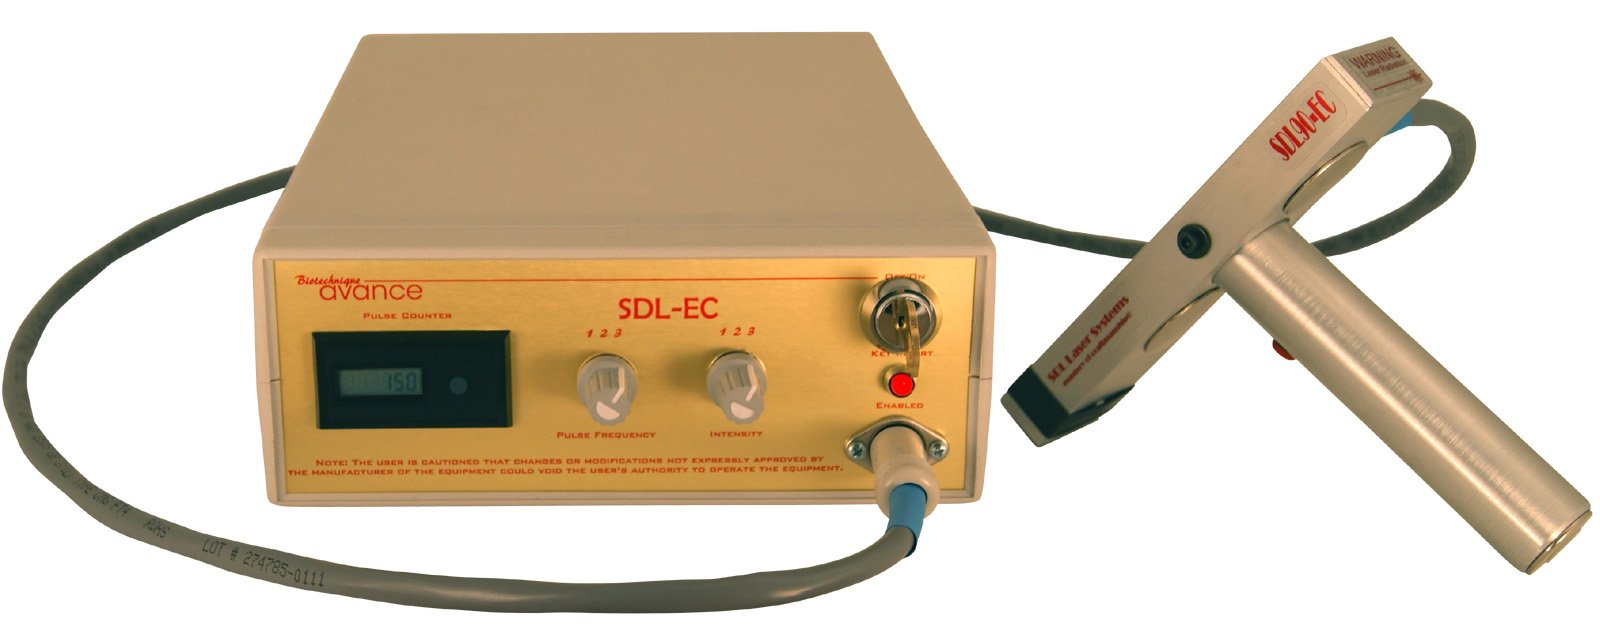 SDL90ec Epidermal Contact Laser for Hair Removal, Skin Resurfacing, Tattoo Erasure